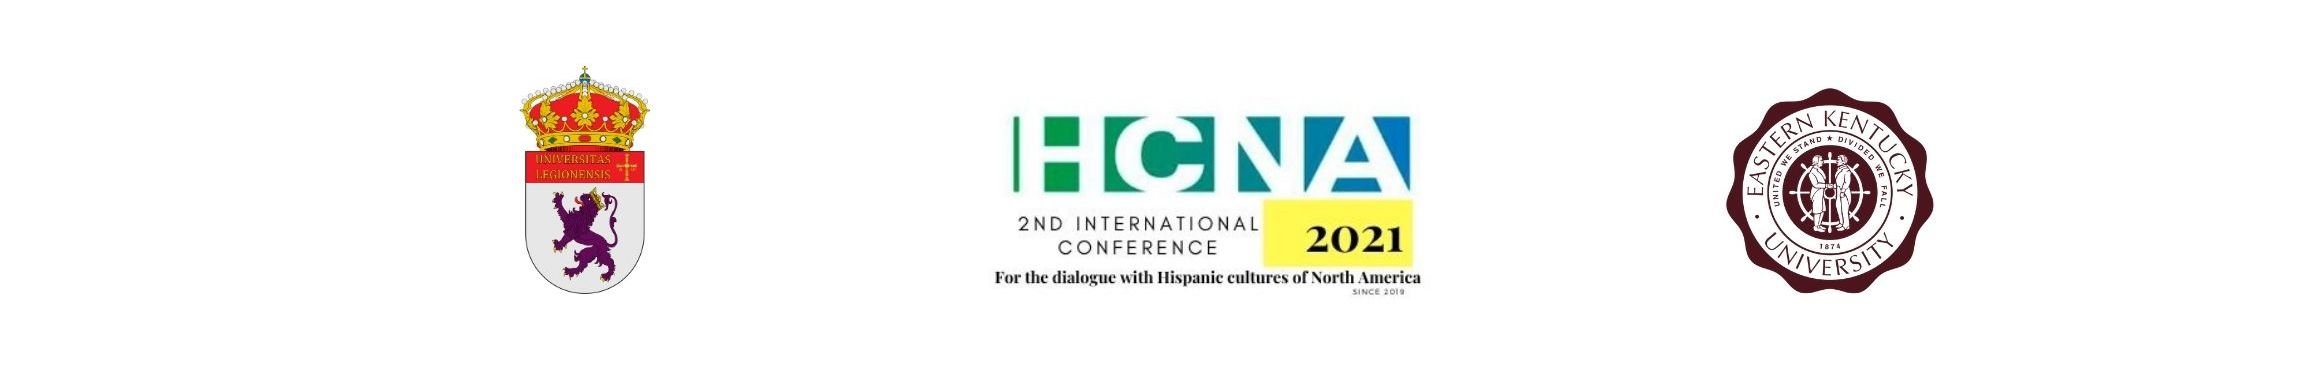 HCNA - 2nd INTERNATIONAL CONFERENCE FOR DIALOGUE WITH THE HISPANIC CULTURES OF NORTH AMERICA 'MUROS' Logo